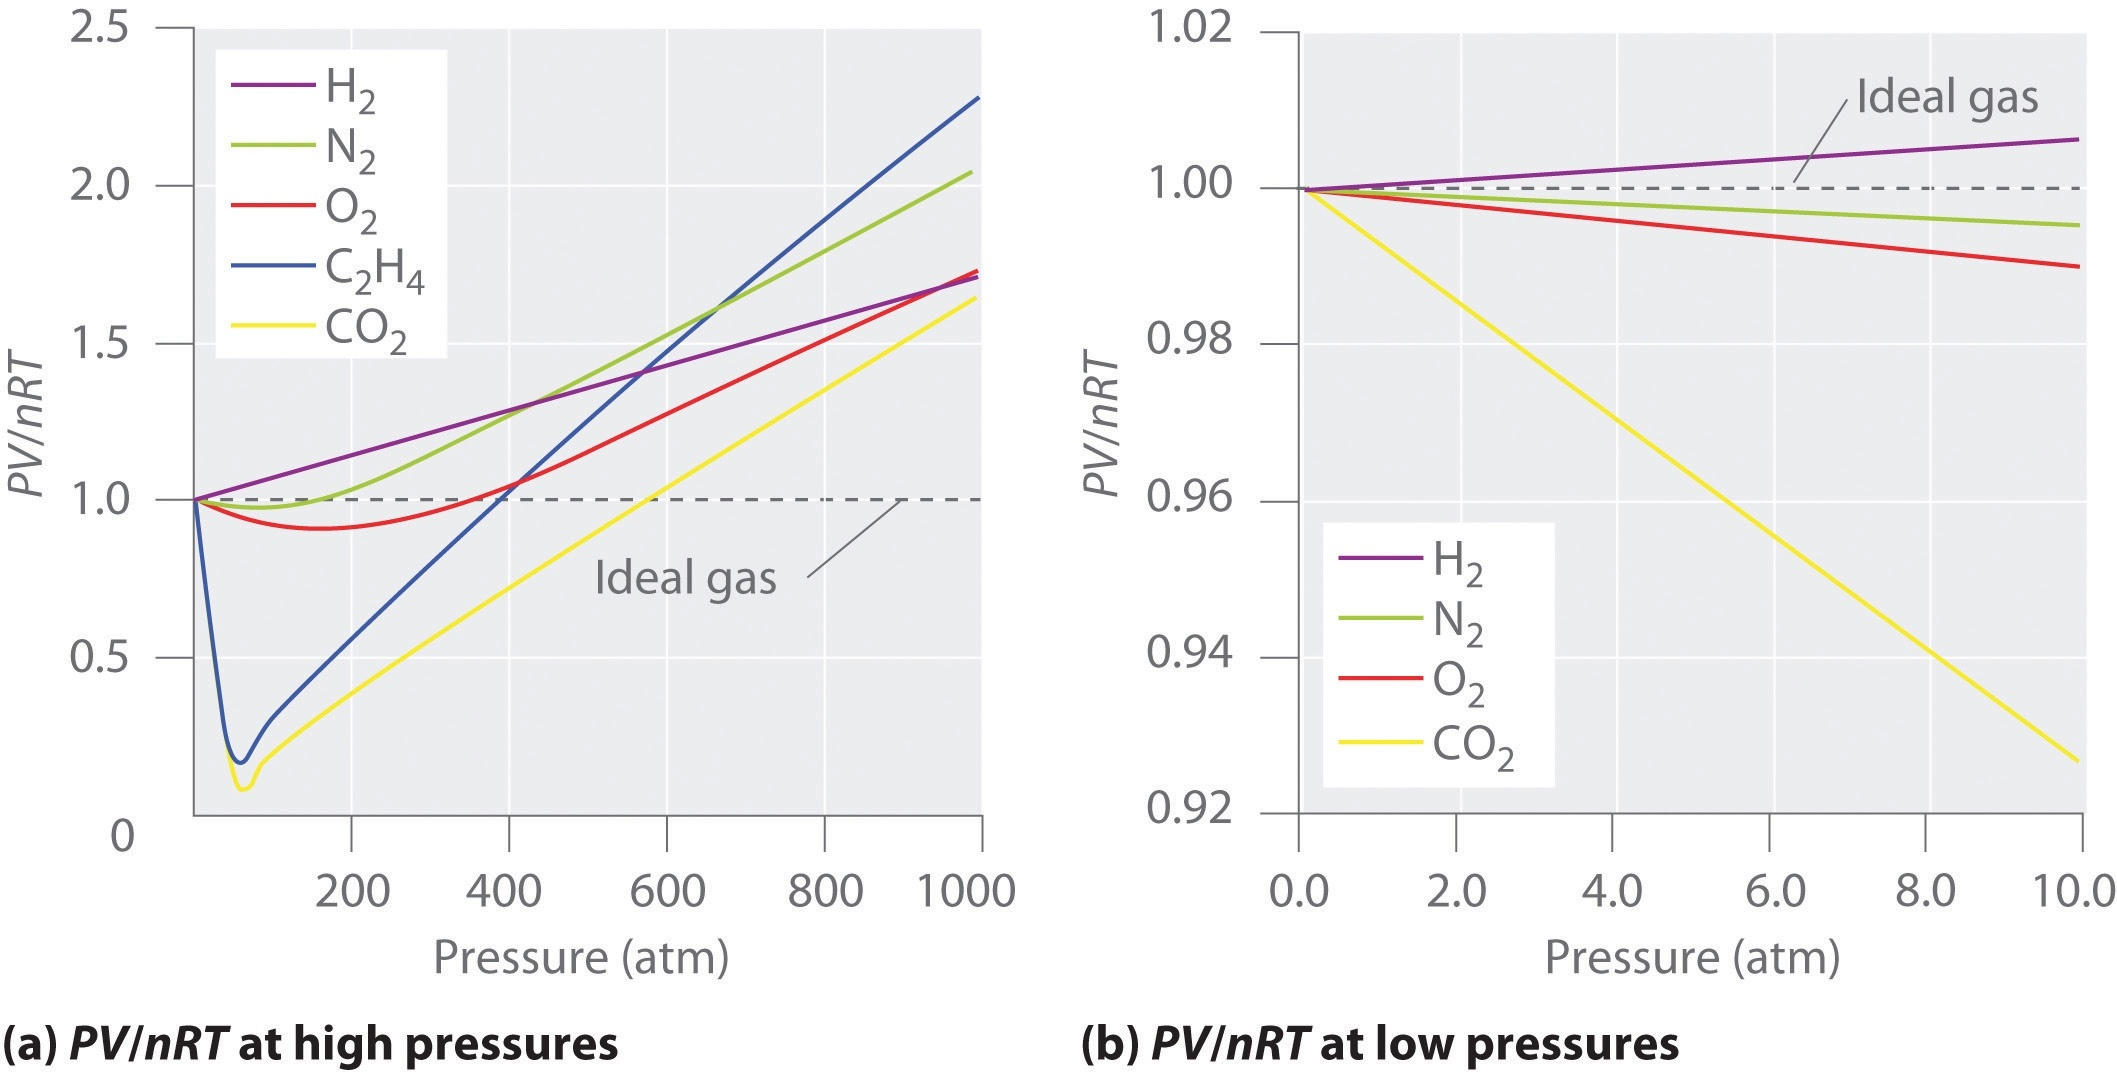 Is air considered an ideal gas? Why or why not? - Quora